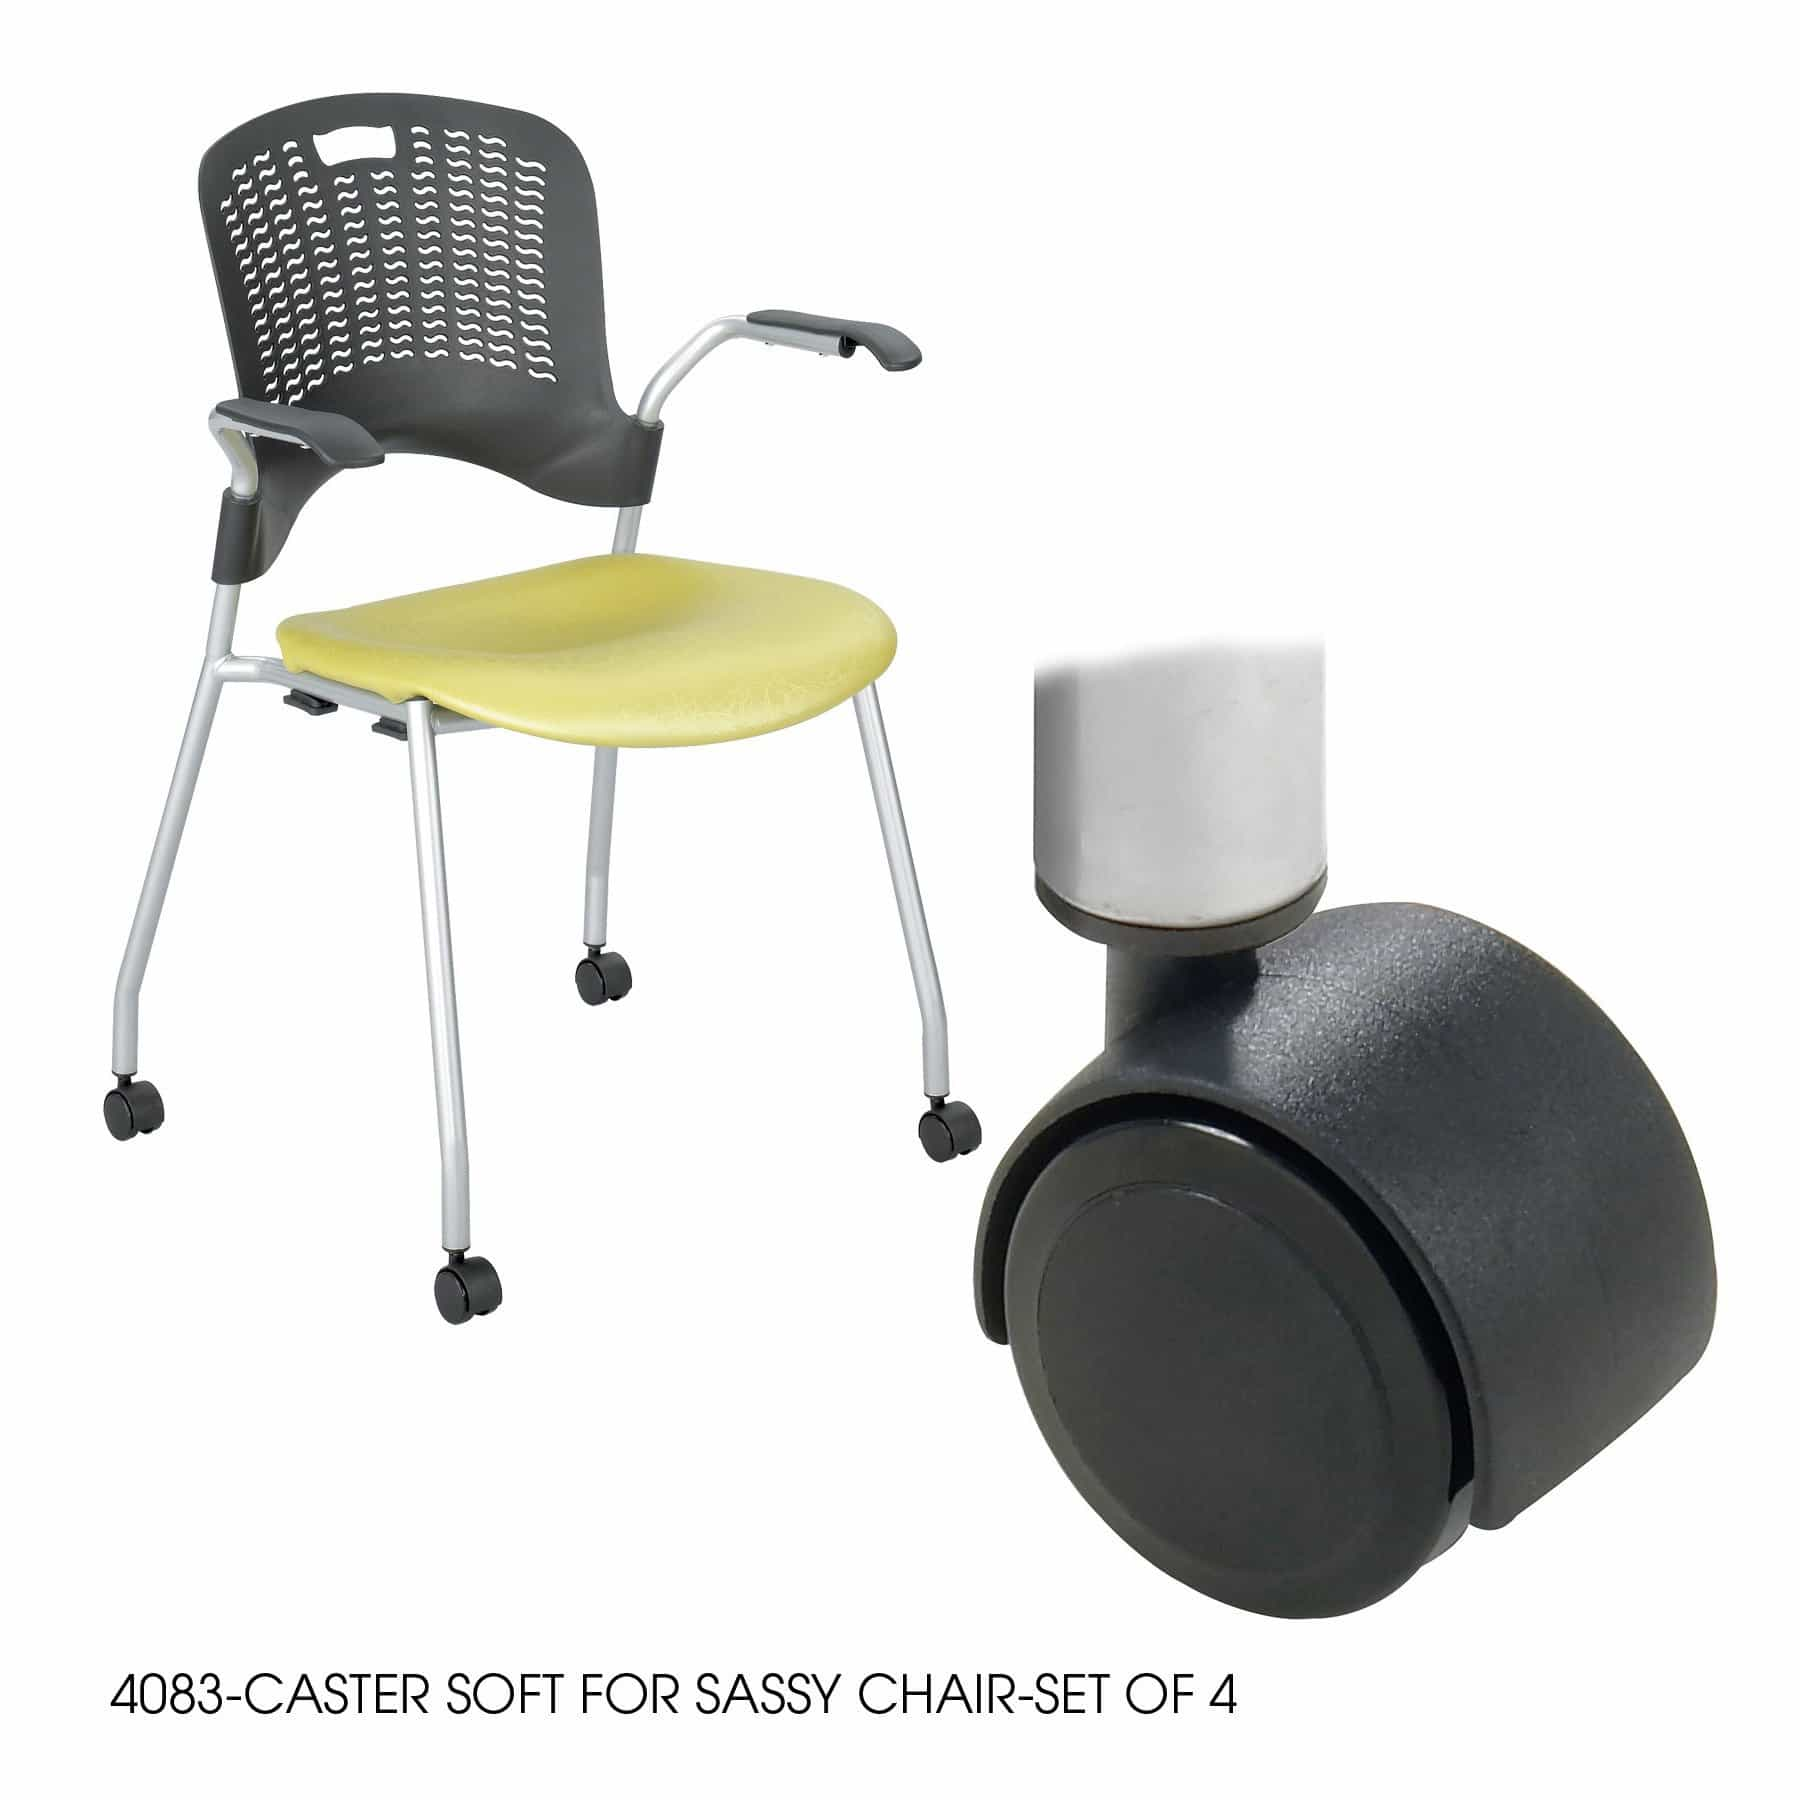 bedinhome - 4083BL Black durable soft caster for Sassy Chair-Set - Safco - Seating Accessories